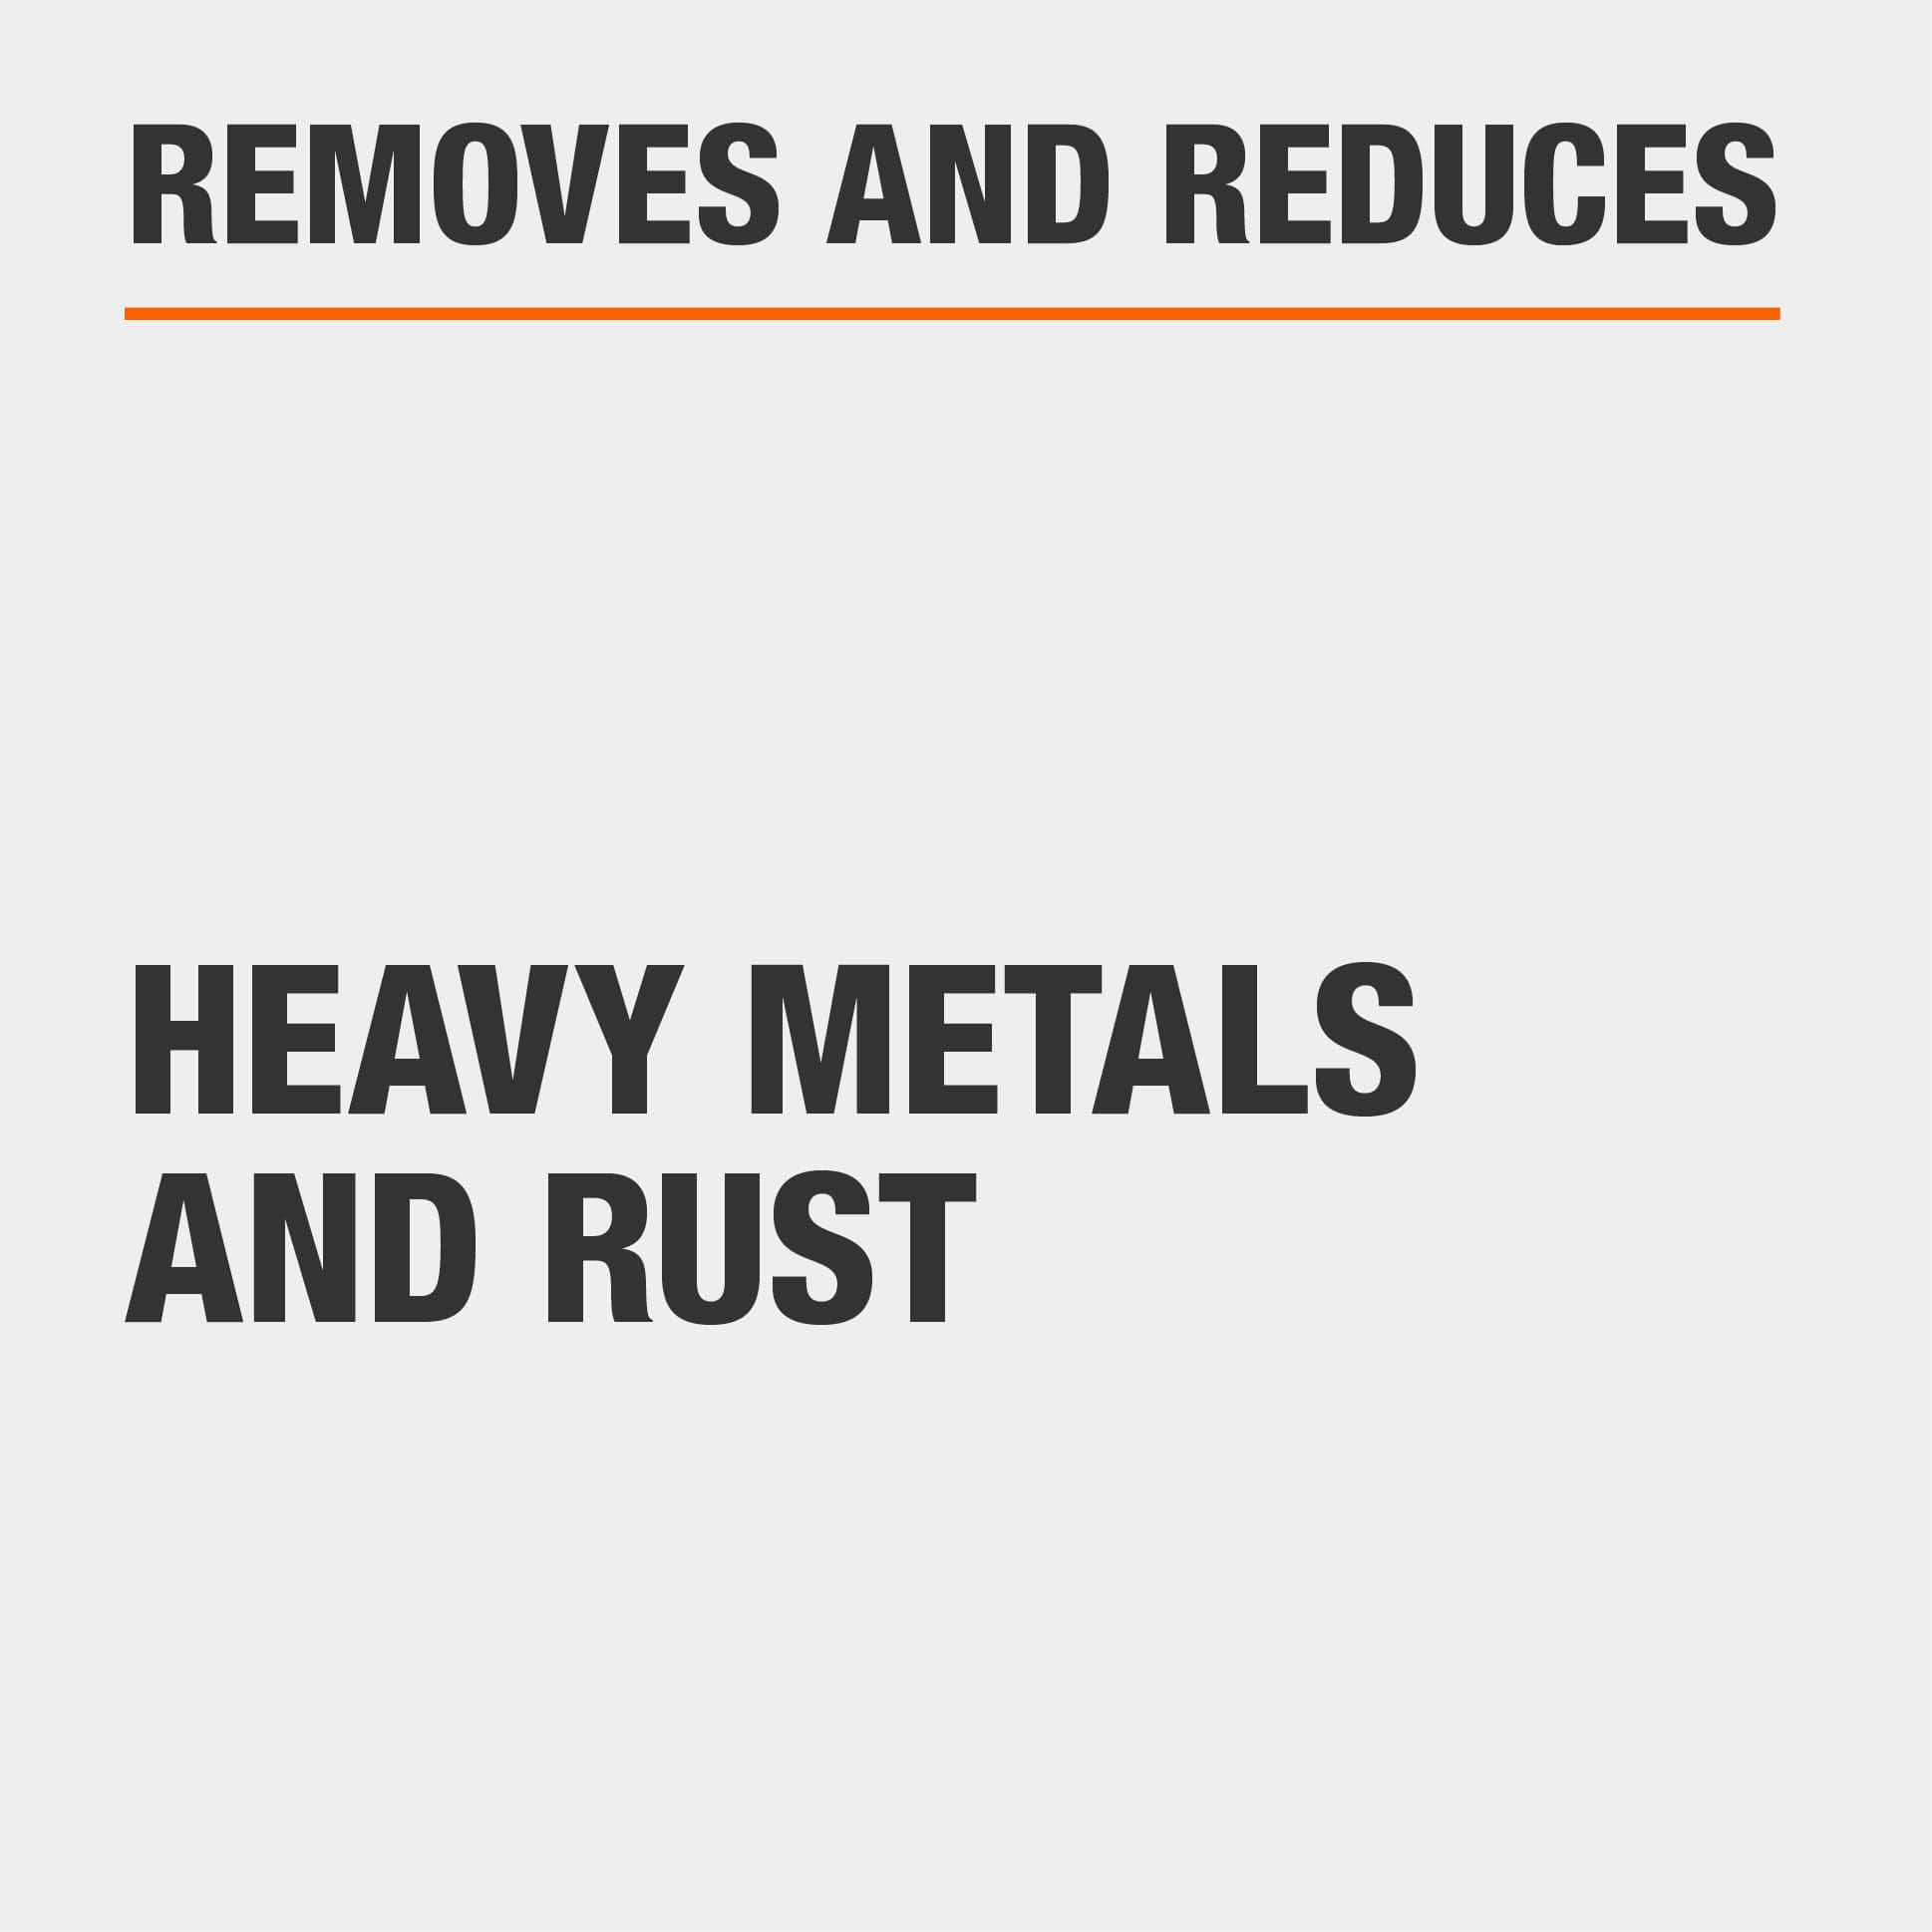 Removes and reduces heavy metals and rust